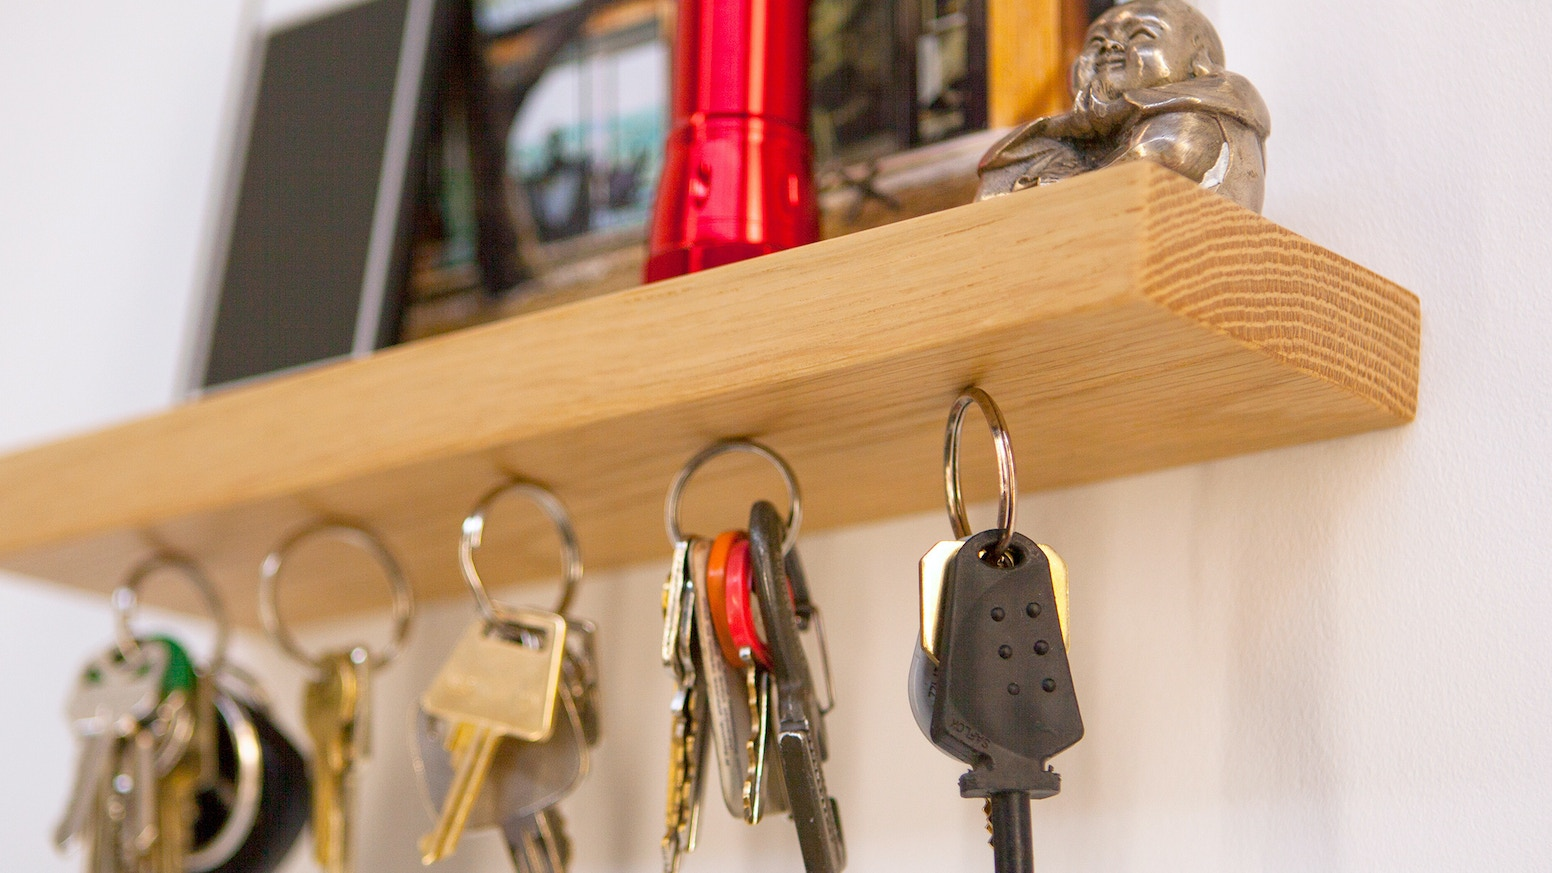 Rackless combines a magnetic key rack with a floating shelf, effortlessly  suspending up to 150